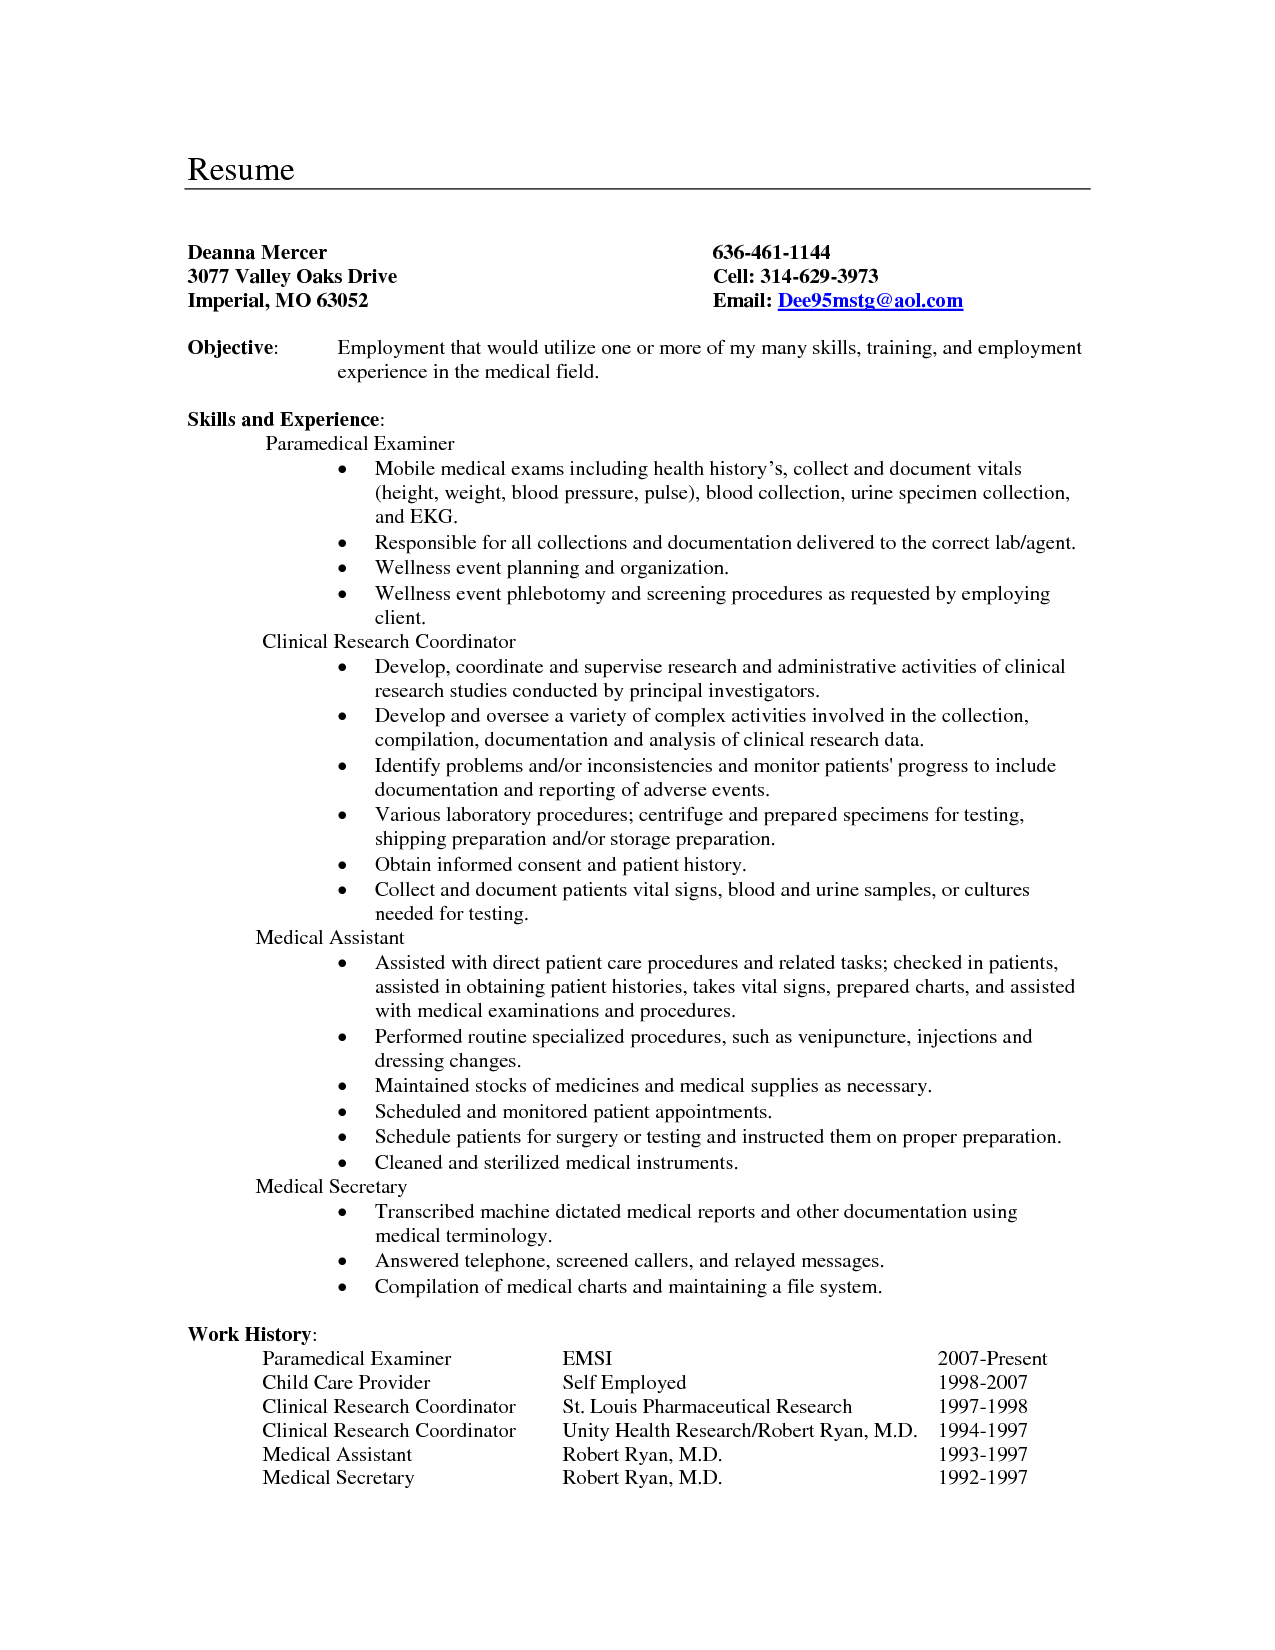 Medical secretary resume objective examples north carolina sample resume with objectives how to write a career objective on a resume resume genius 20 resume objective examples use them on your resume tips yelopaper Image collections